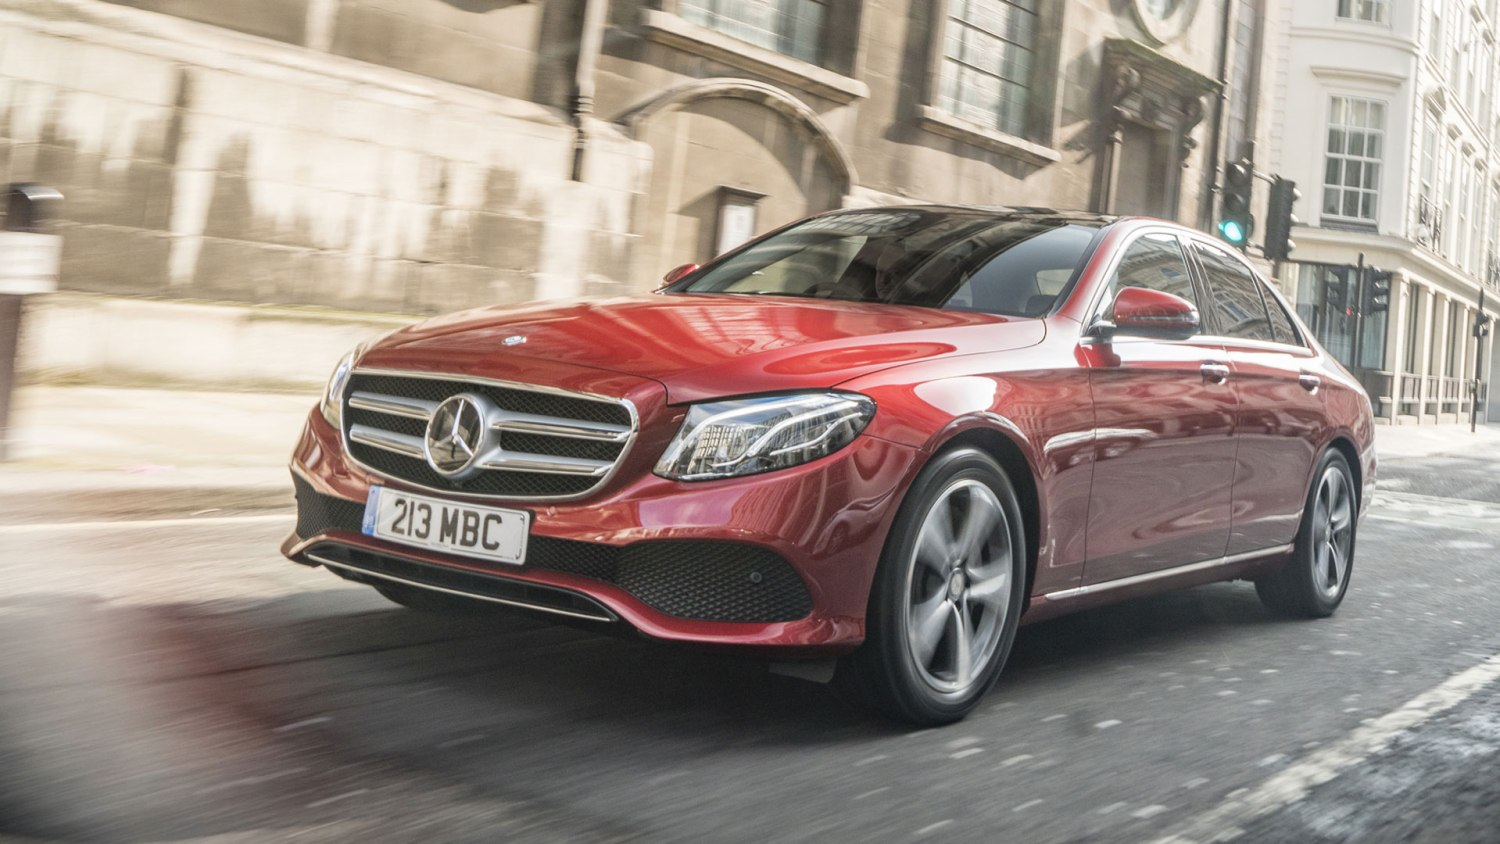 Europe's private registrations in 2018